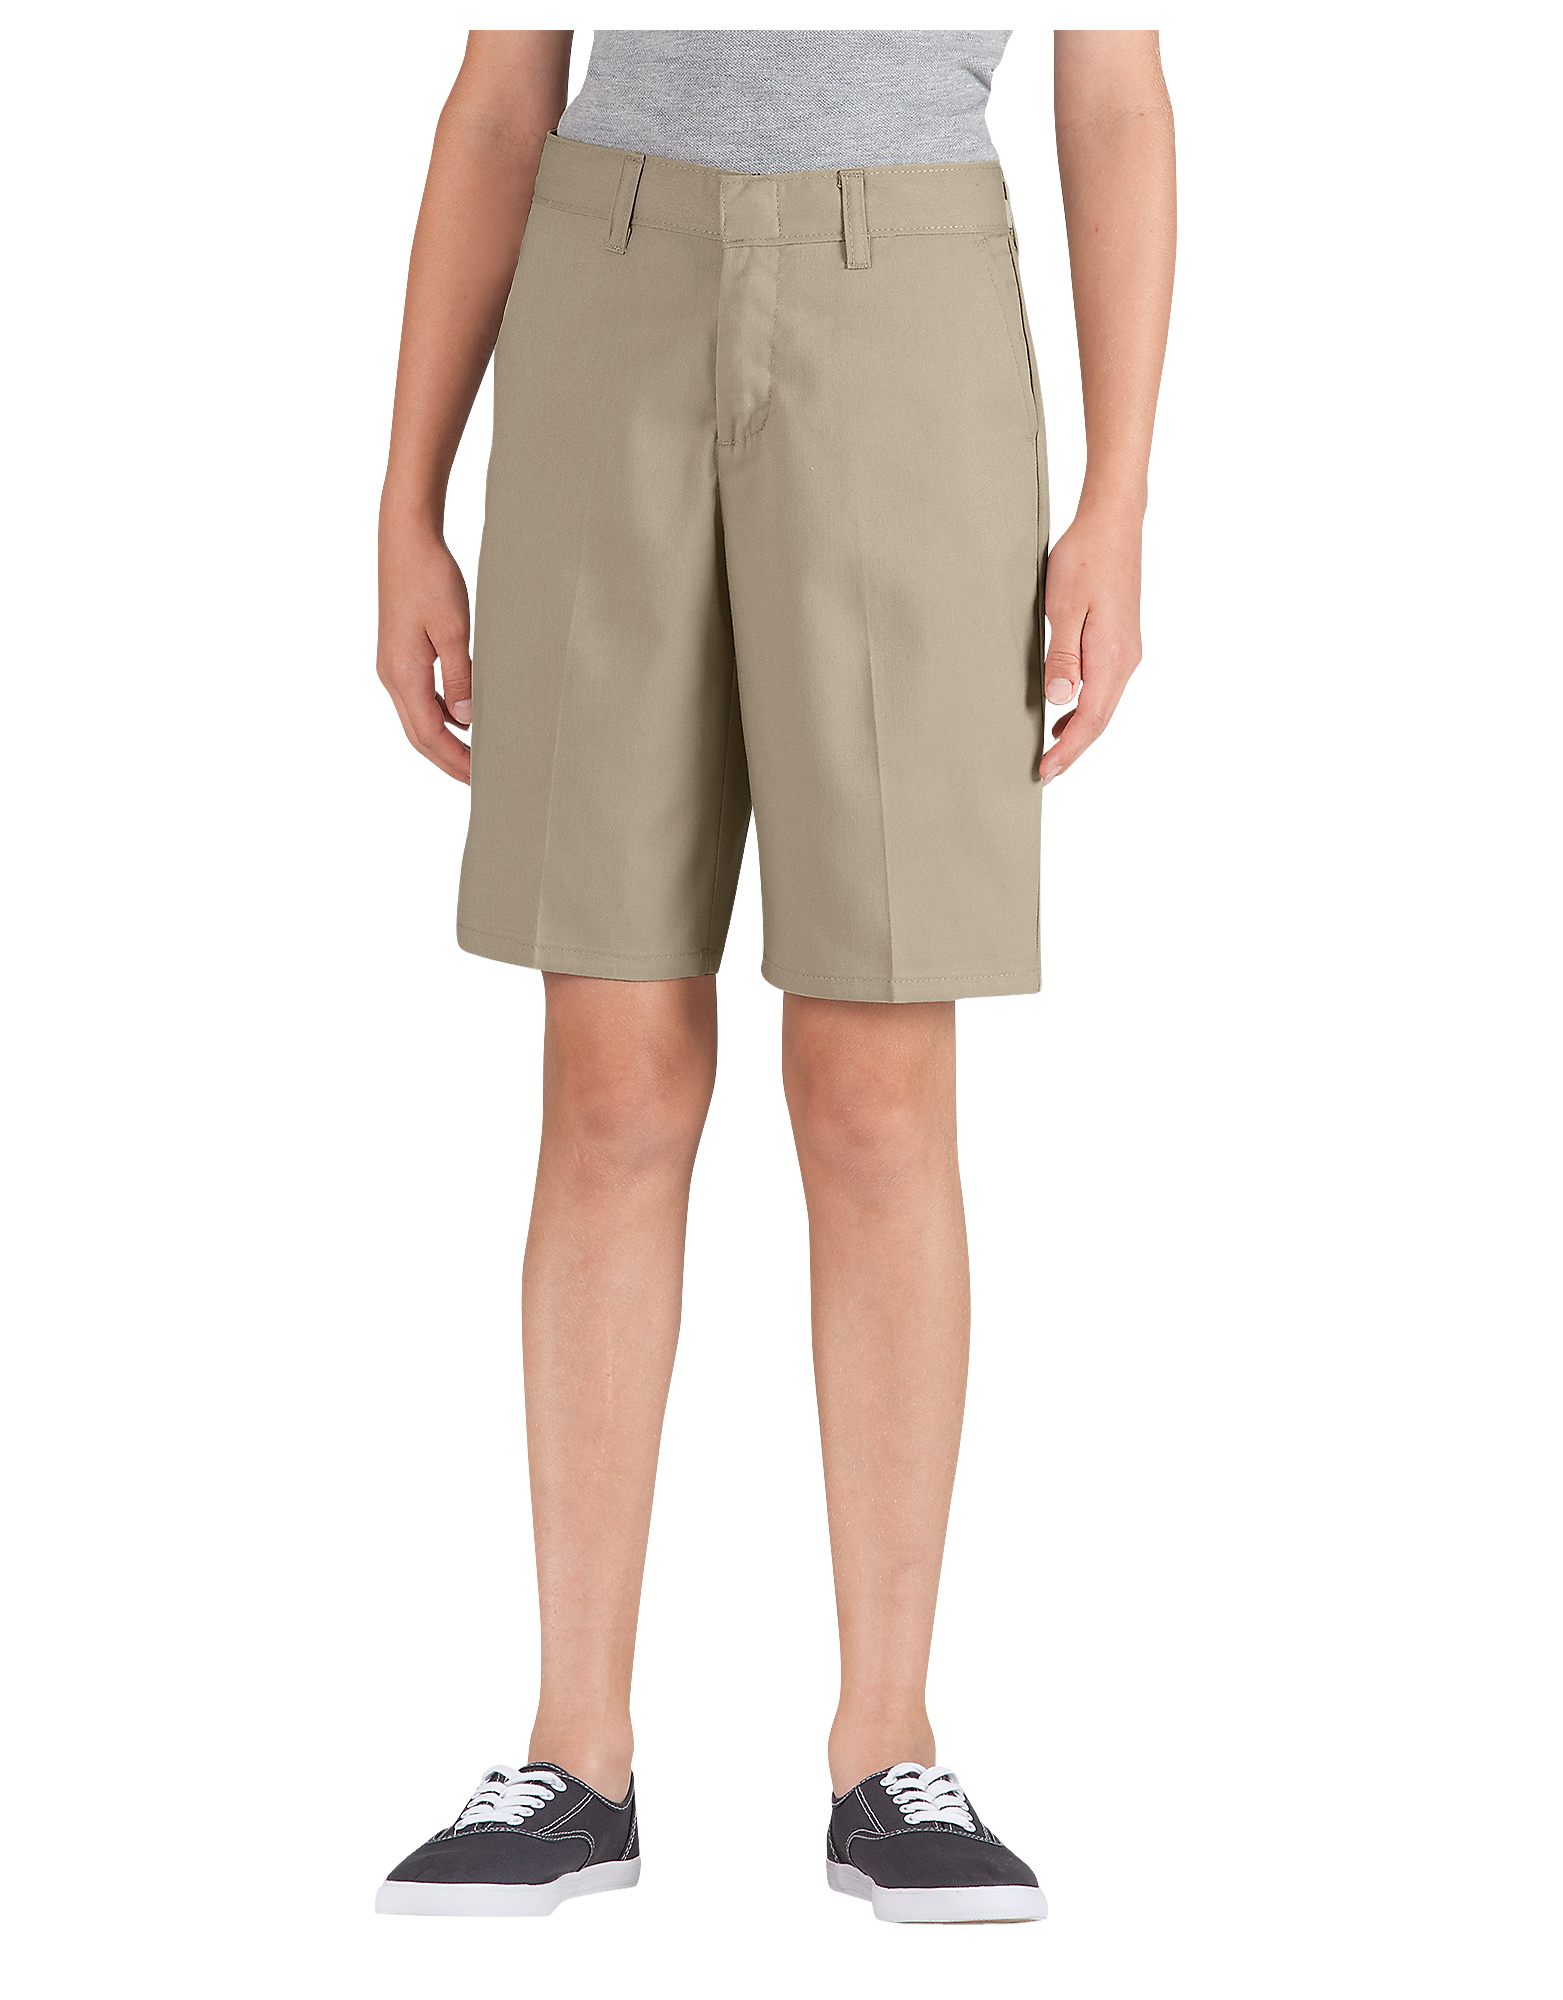 9f7fa215a Genuine Dickies Girls' Classic Traditional Flat Front Shorts - Military  Khaki (KH)